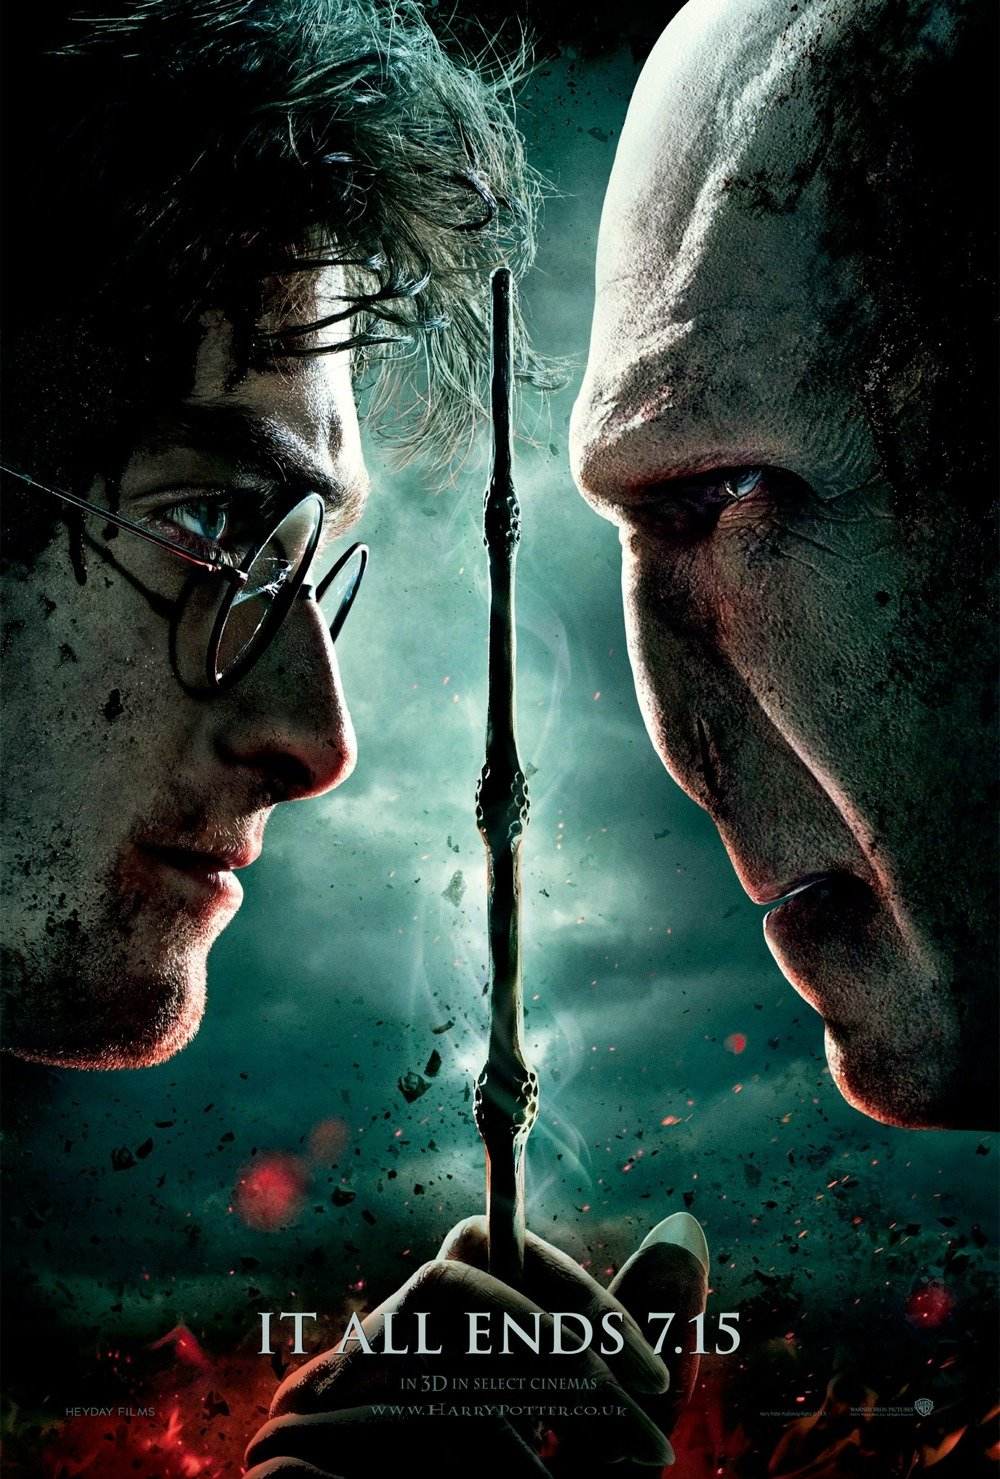 Harry Potter and the Deathly Hallows: Part 2 - trailer ...